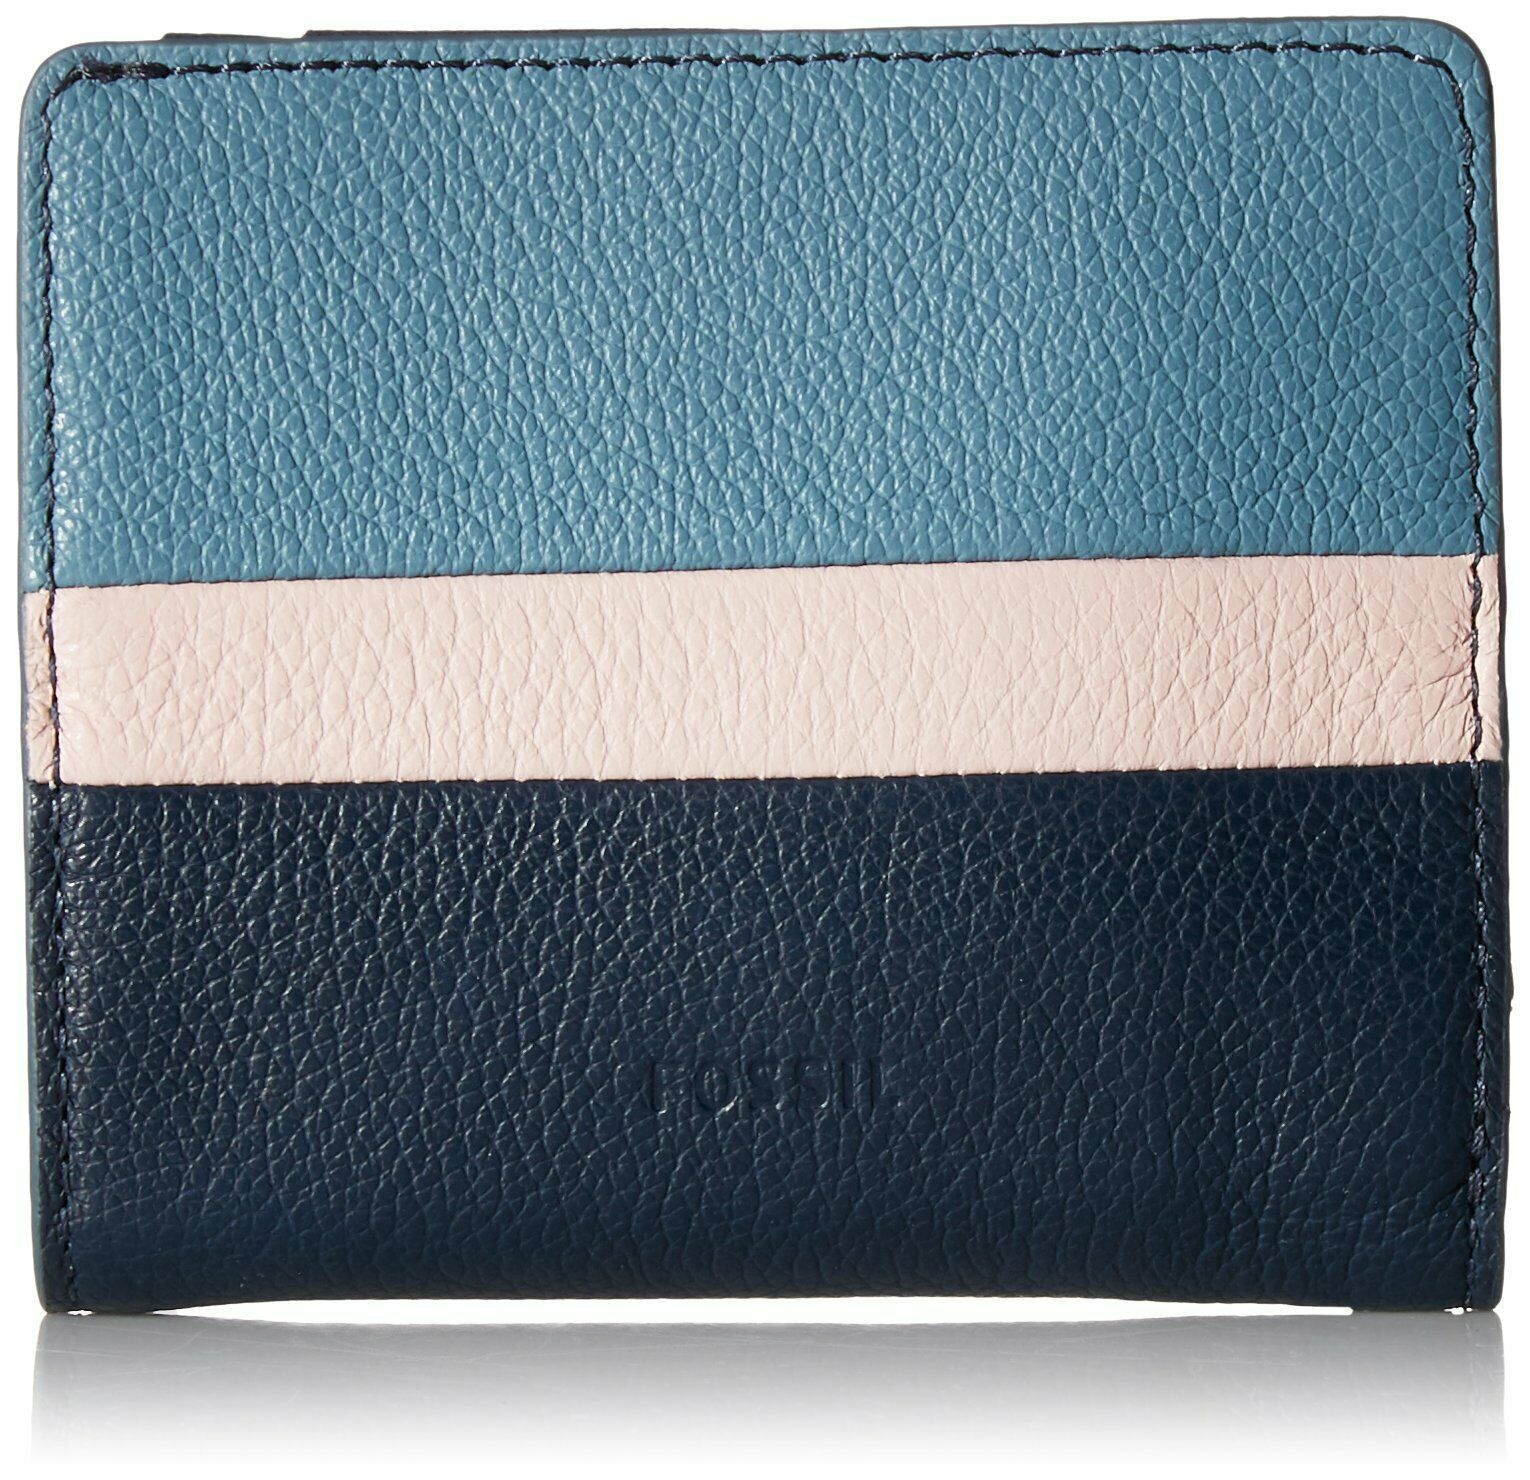 Fossil Women's Emma RFID Bifold Mini Wallet, Blue Multi $45